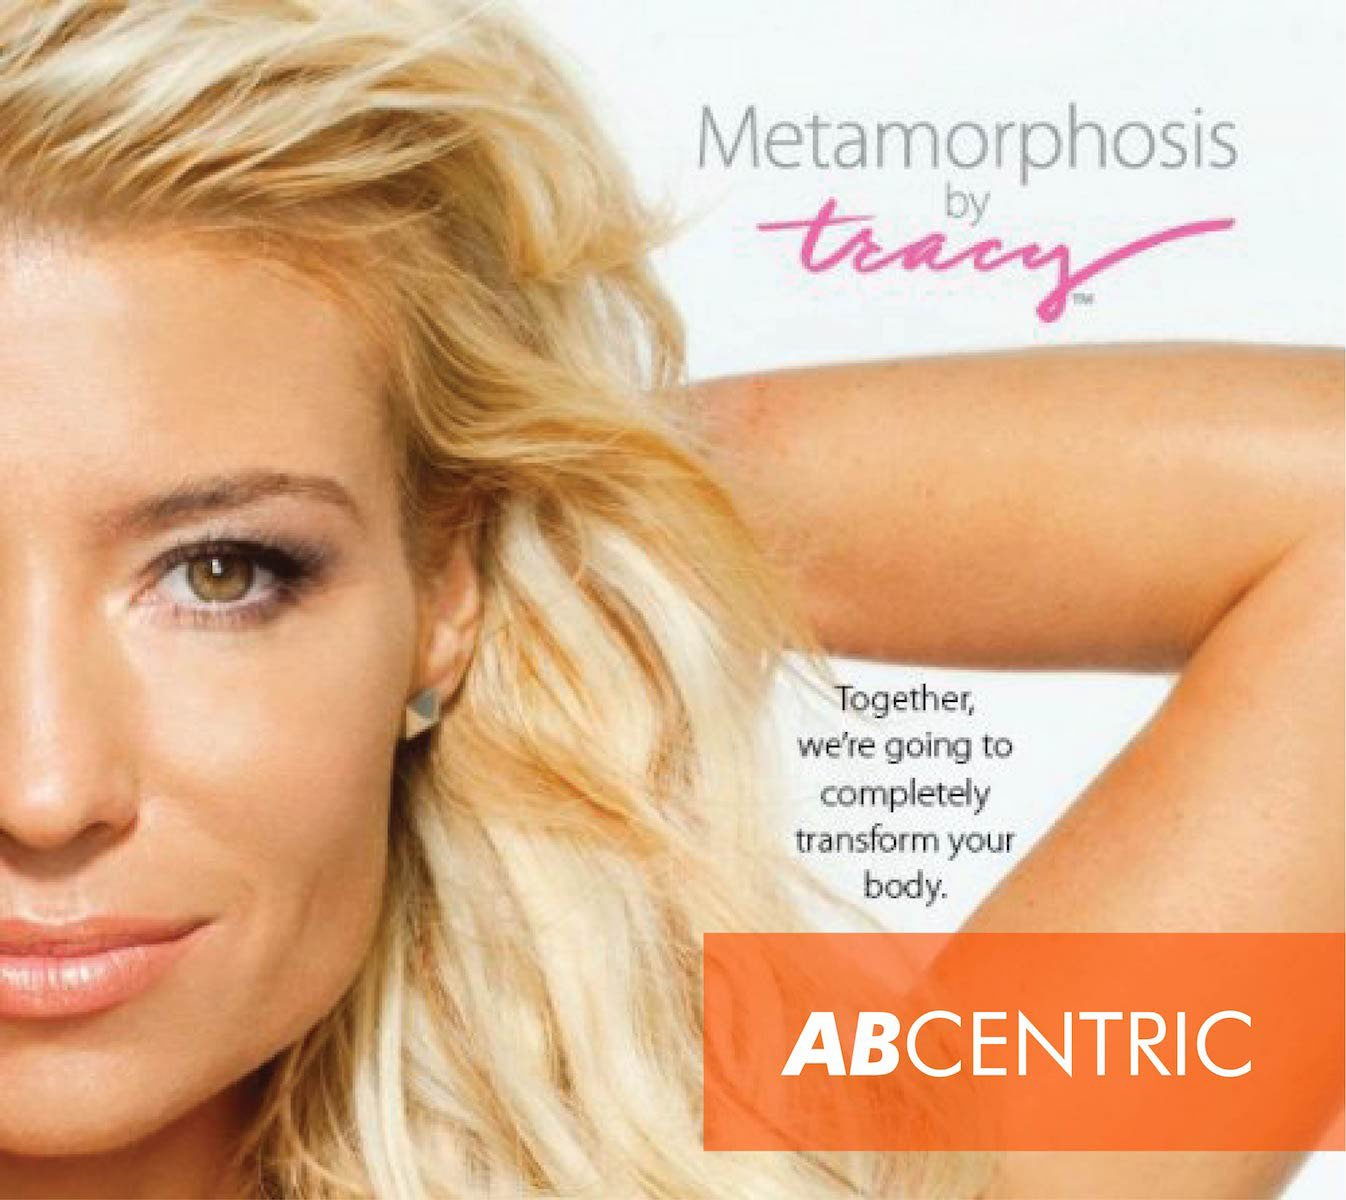 Metamorphosis by Tracy Abcentric - Tracy Anderson 4 DVD Set